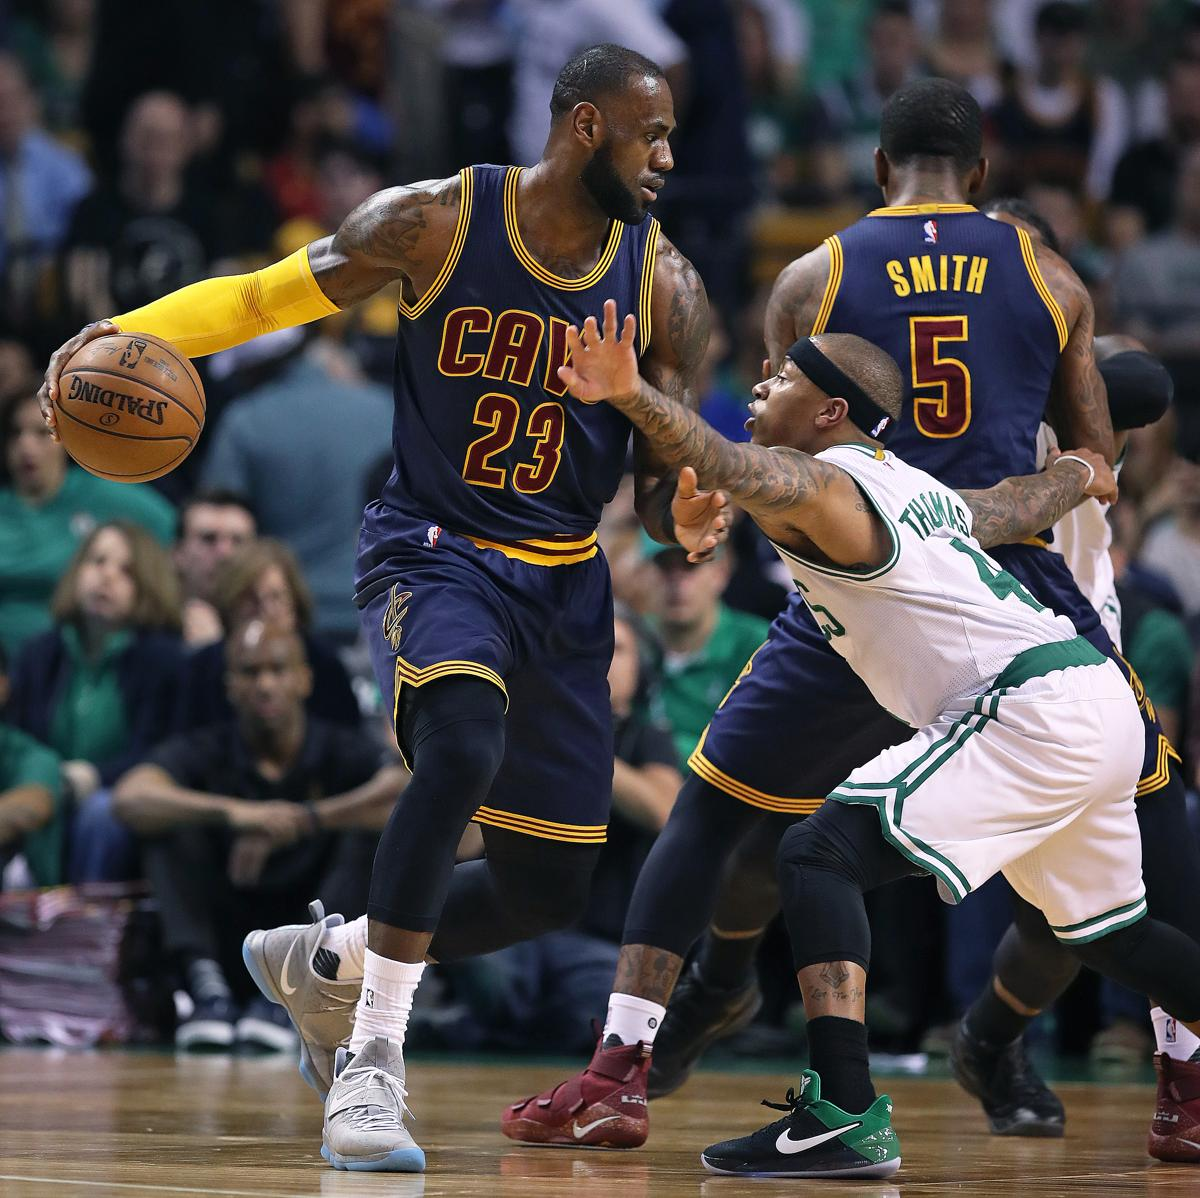 Stong quote by lebron james on the bond with his teammates - Boston Ma May 17 2017 The Celtics Isaiah Thomas Tries To Cover The Isaiah Thomas Gives His Best Shot At Keeping Lebron James